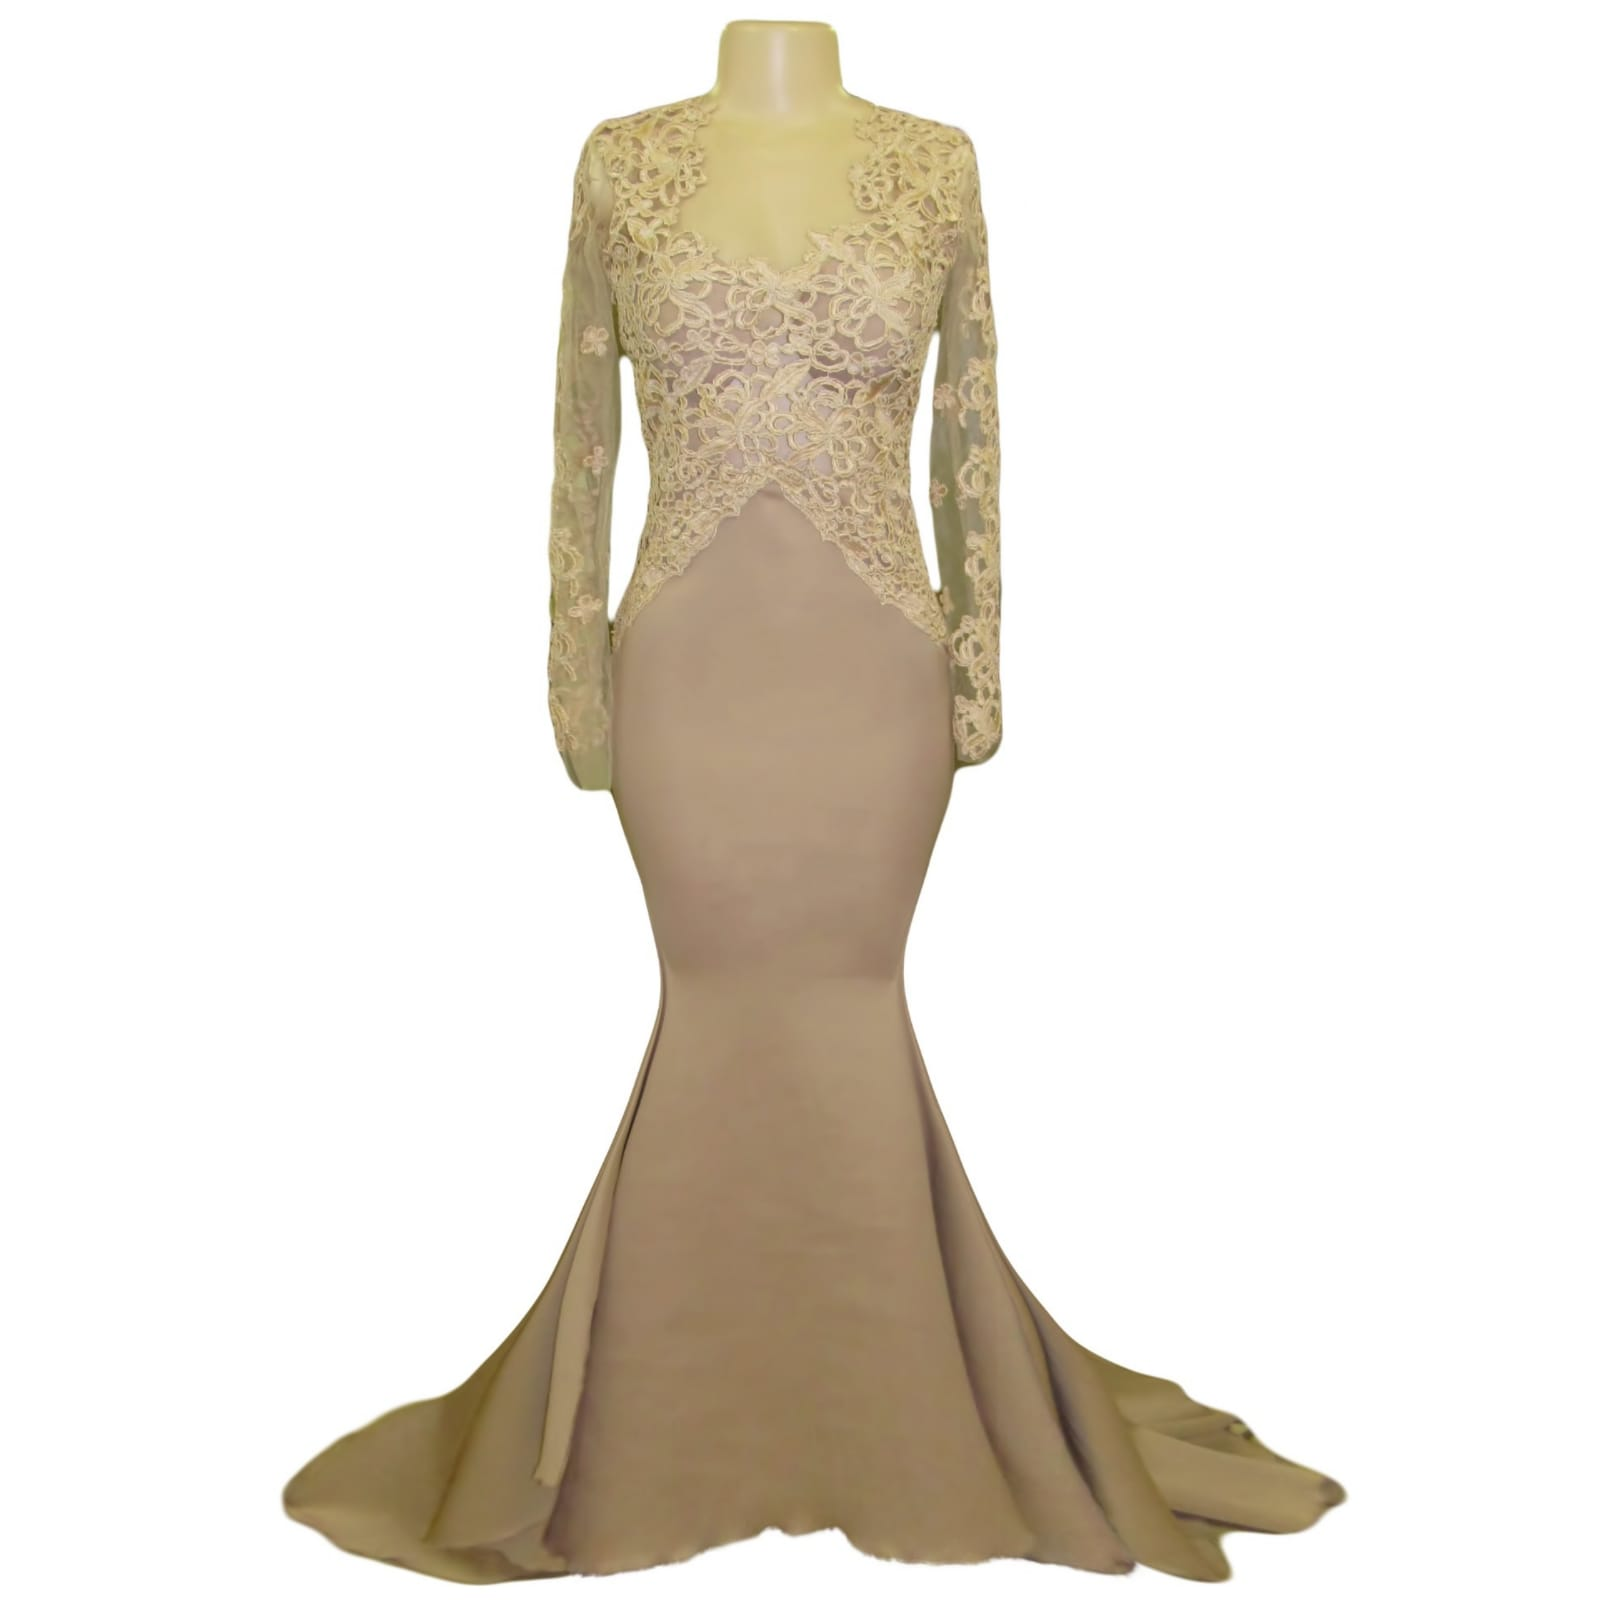 Tan and champagne lace bodice prom dress 4 tan & champagne lace bodice, soft mermaid prom dress, lace detail going to the hips. With a closed lace back. Illusion lace sleeves and a train.